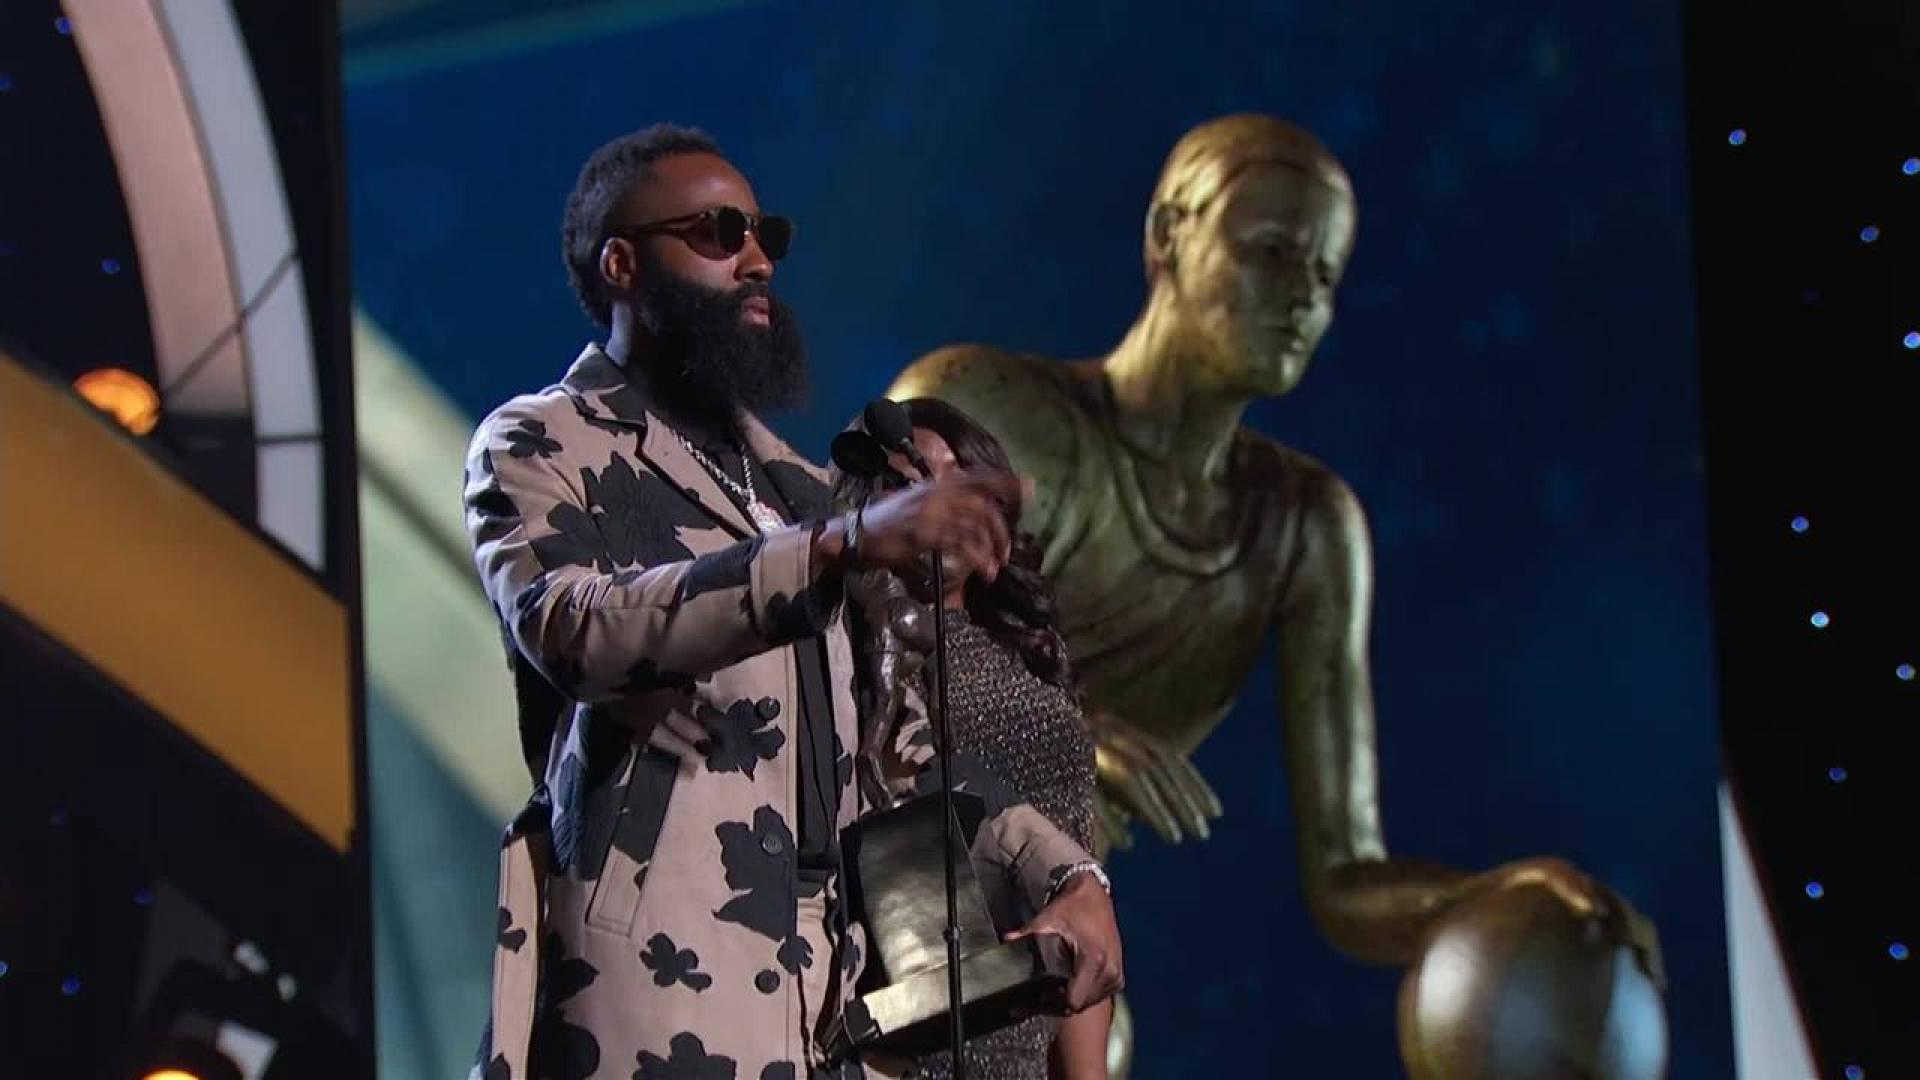 Kia NBA Most Valuable Player James Harden NBAcom 1920x1080